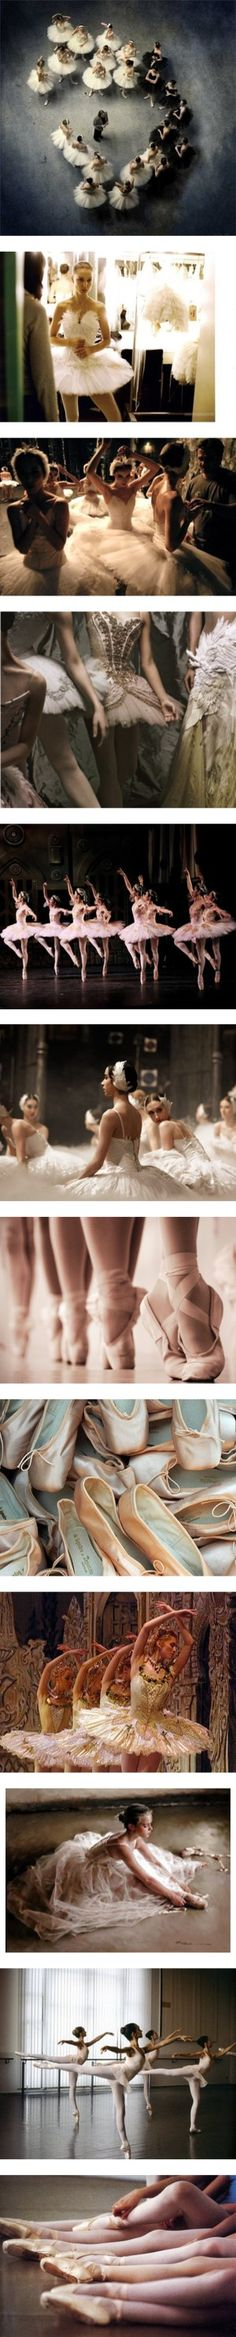 """The Art of Ballet"" by louisebs ❤ liked on Polyvore"